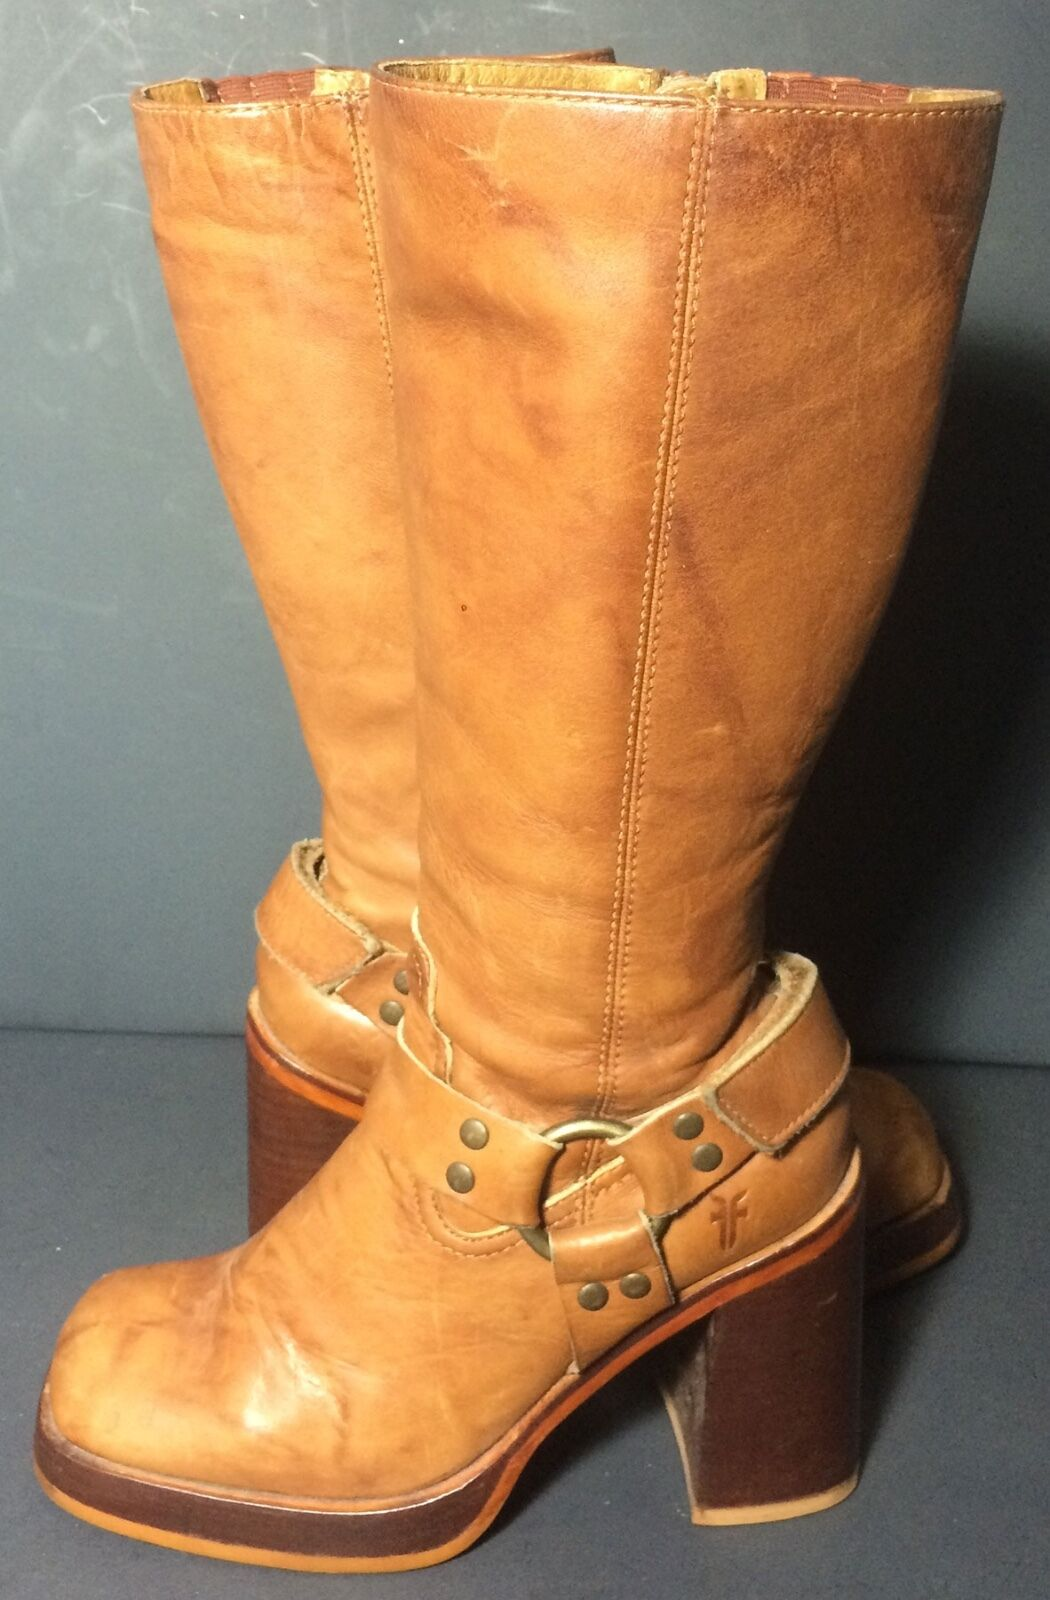 FRYE 77550 Karma Harness Brown Marbled Leather Motorcycle Boots Women's Size 6.5